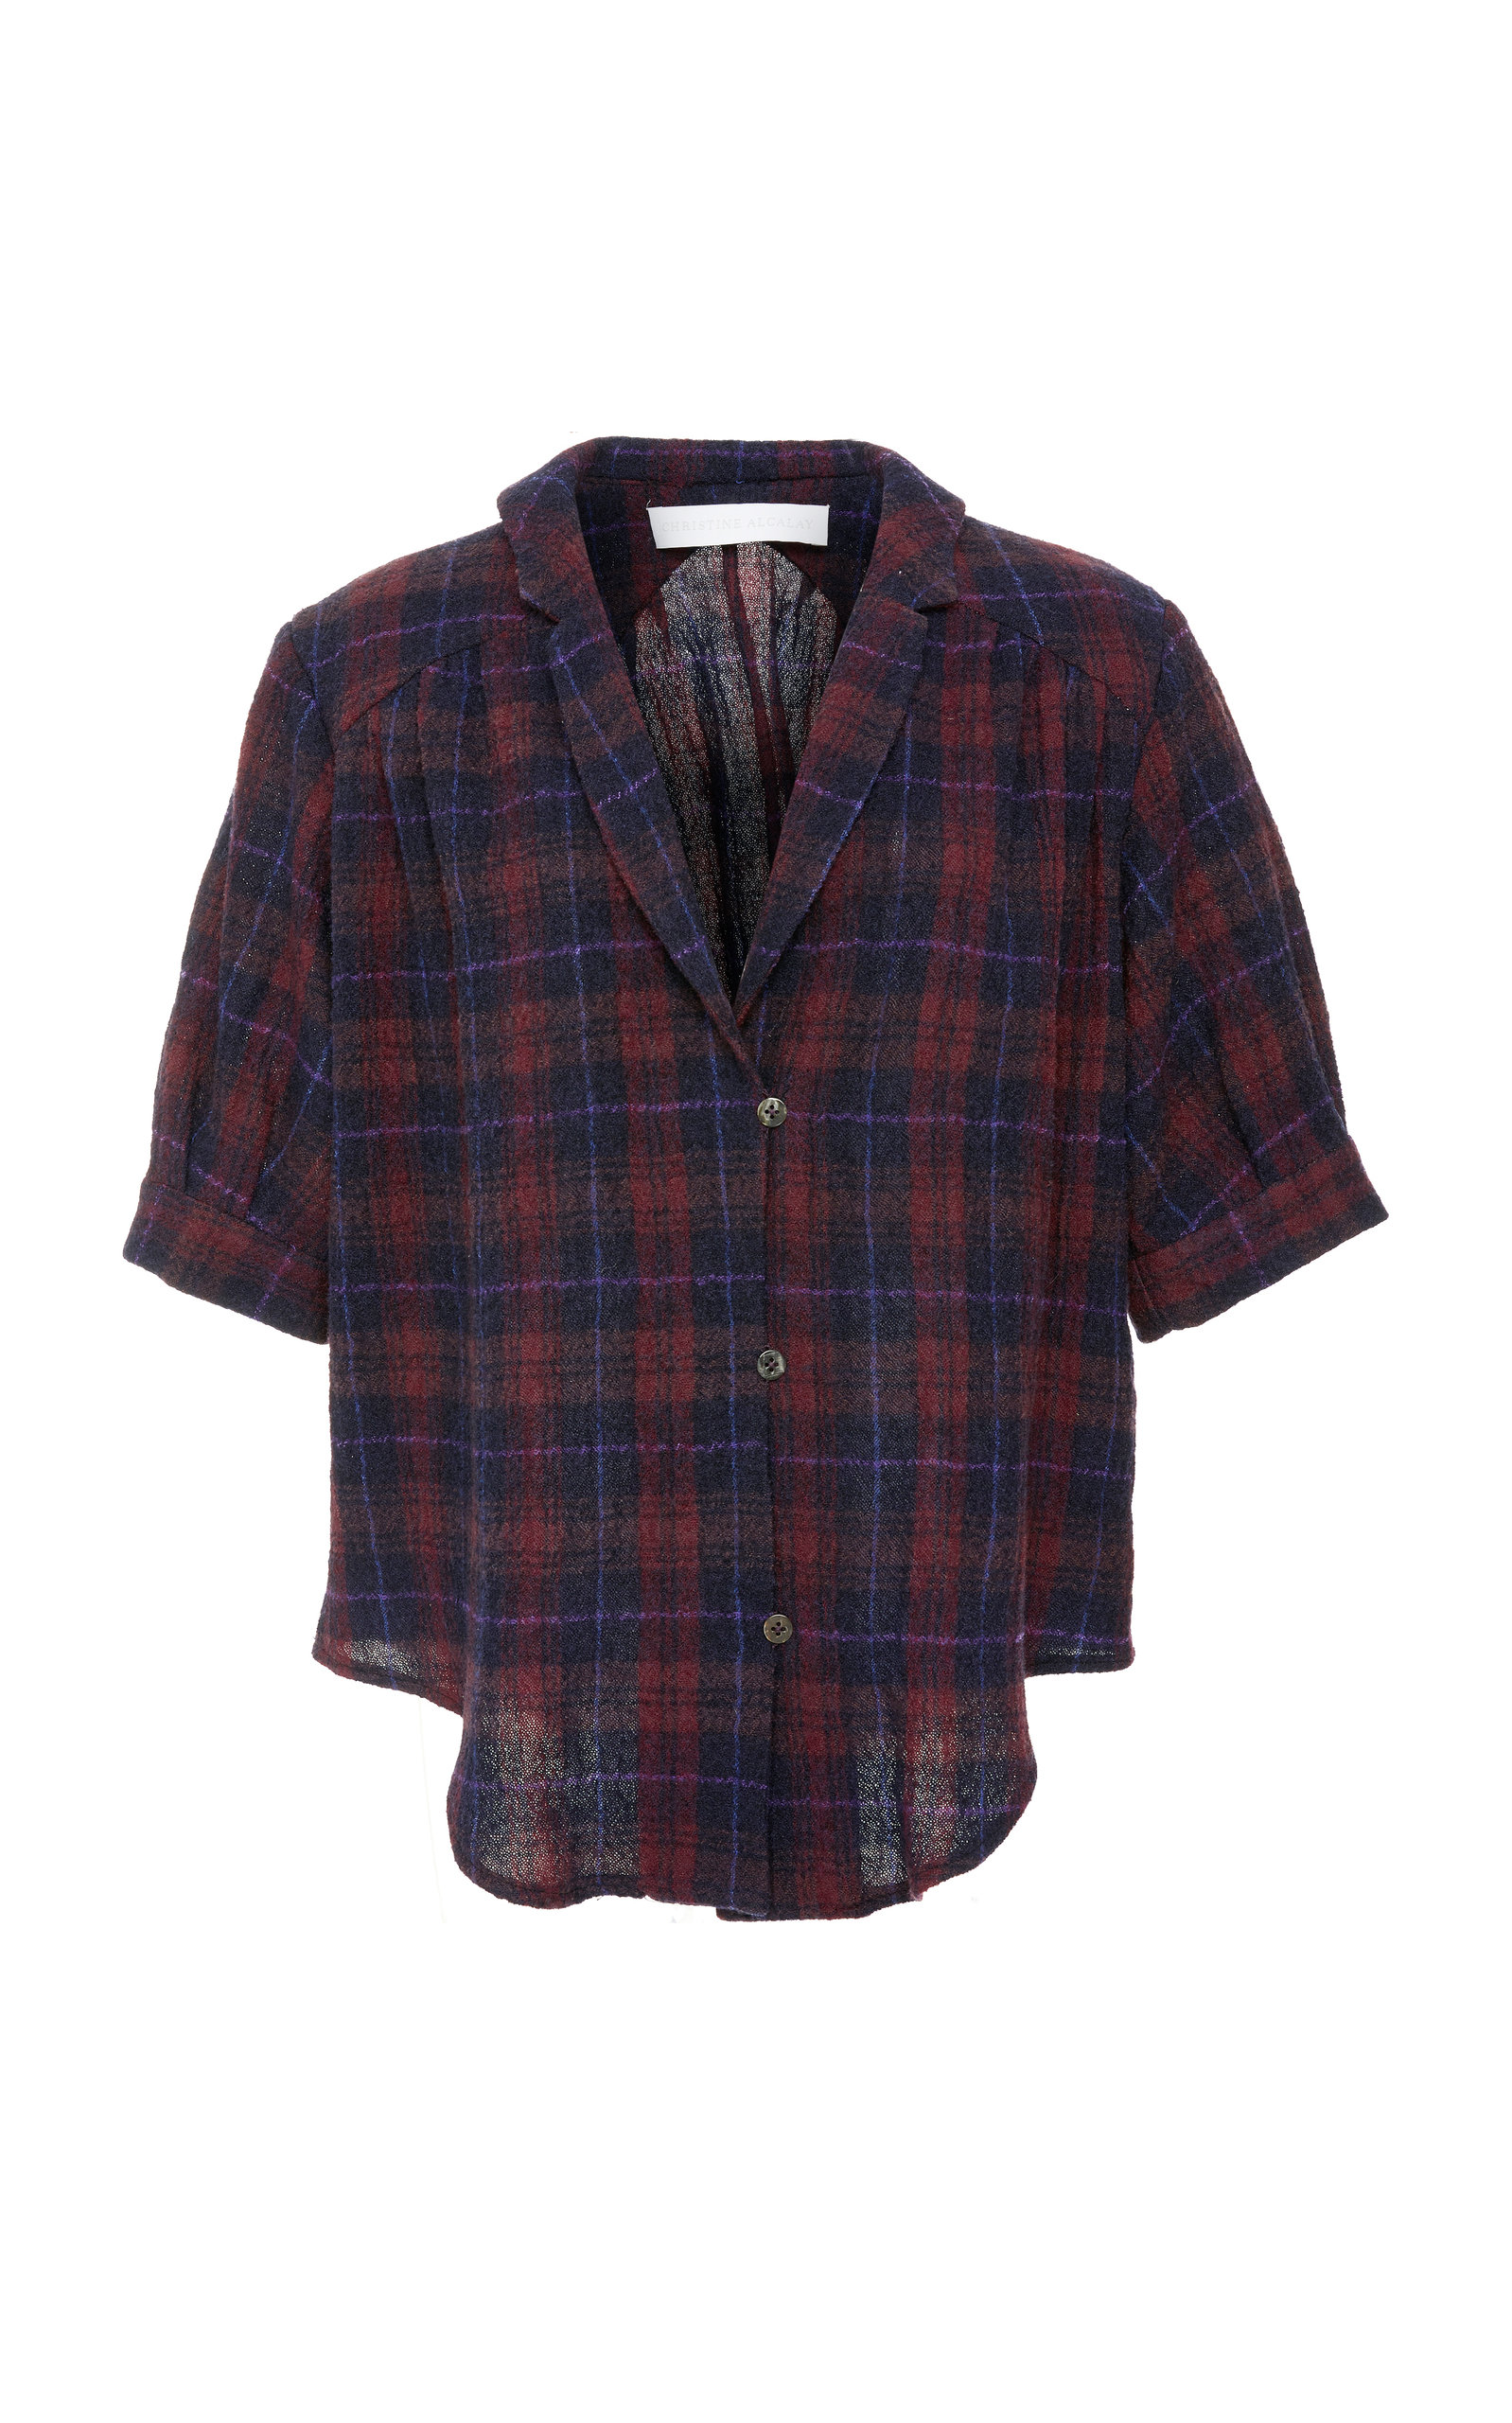 CHRISTINE ALCALAY Short Sleeve Wool Blouse in Plaid